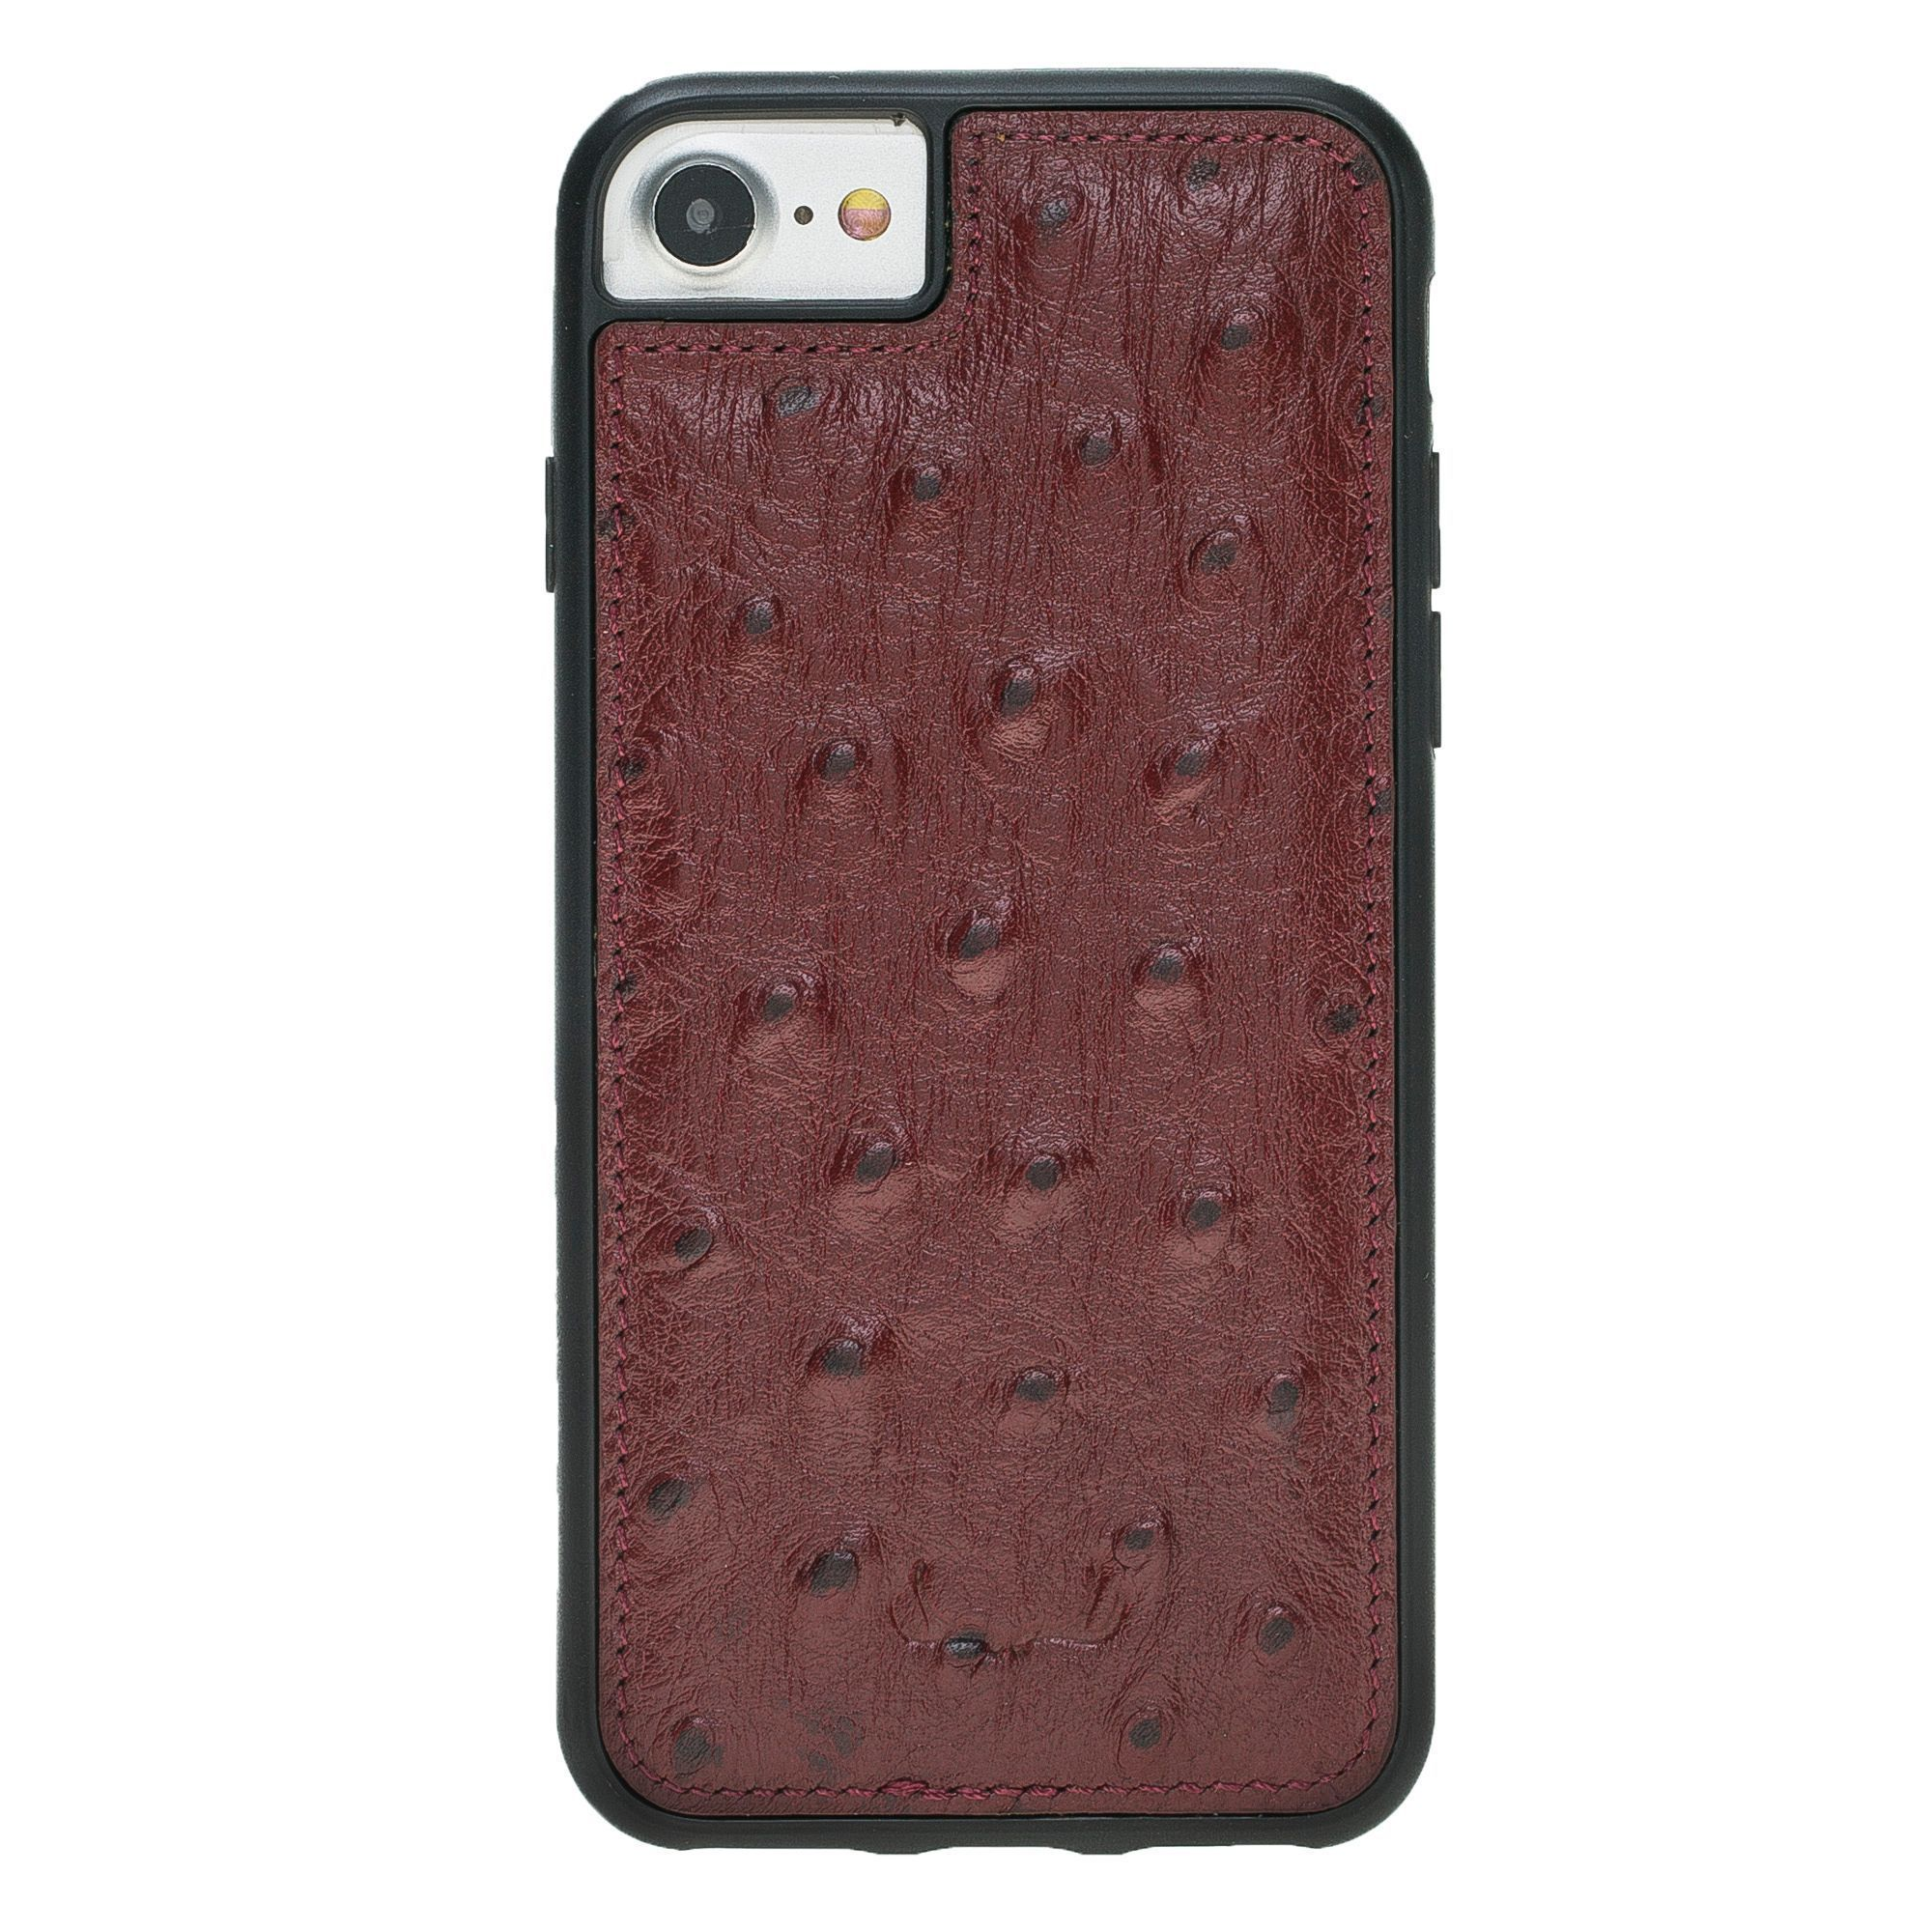 BNT Flex Cover Leather Cases - Ostrich - iPhone 7/8 - Red